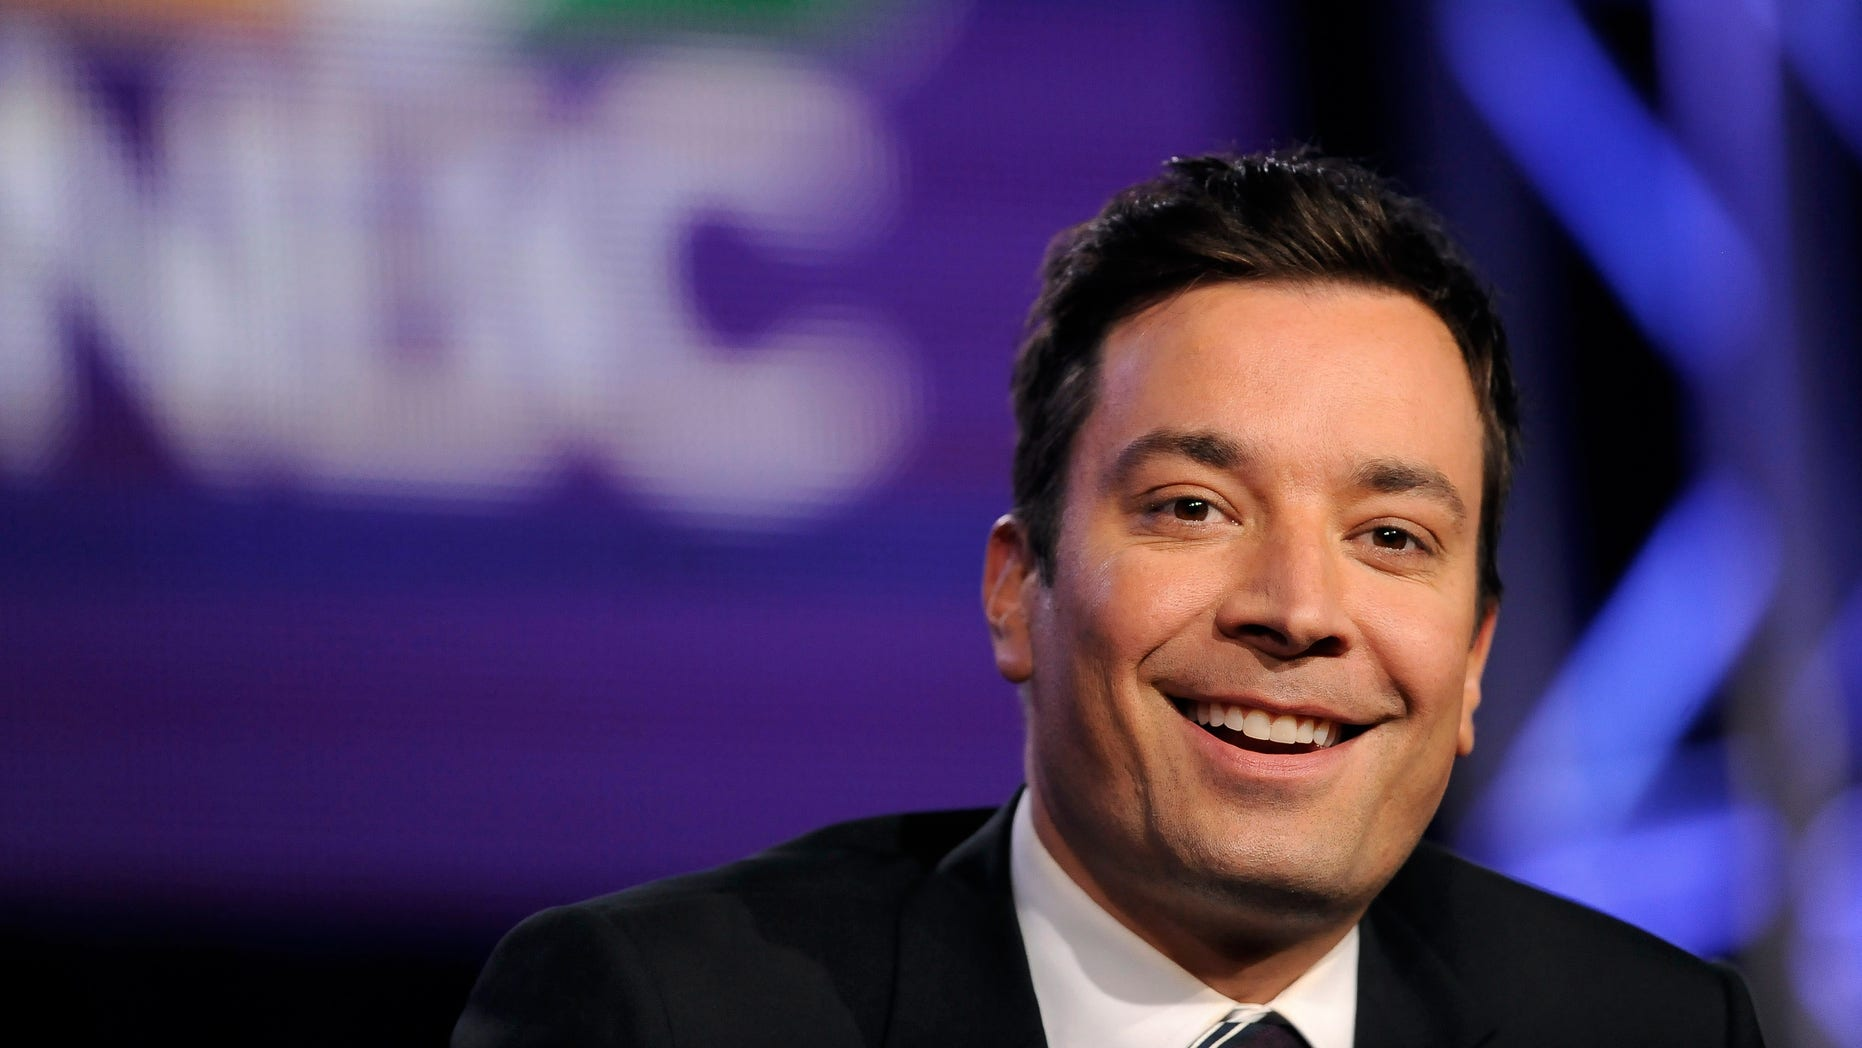 """January 19, 2014. Jimmy Fallon, host of """"The Tonight Show Starring Jimmy Fallon"""" takes part in a panel discussion at the NBC portion of the 2014 Winter Press Tour for the Television Critics Association in Pasadena, California,"""